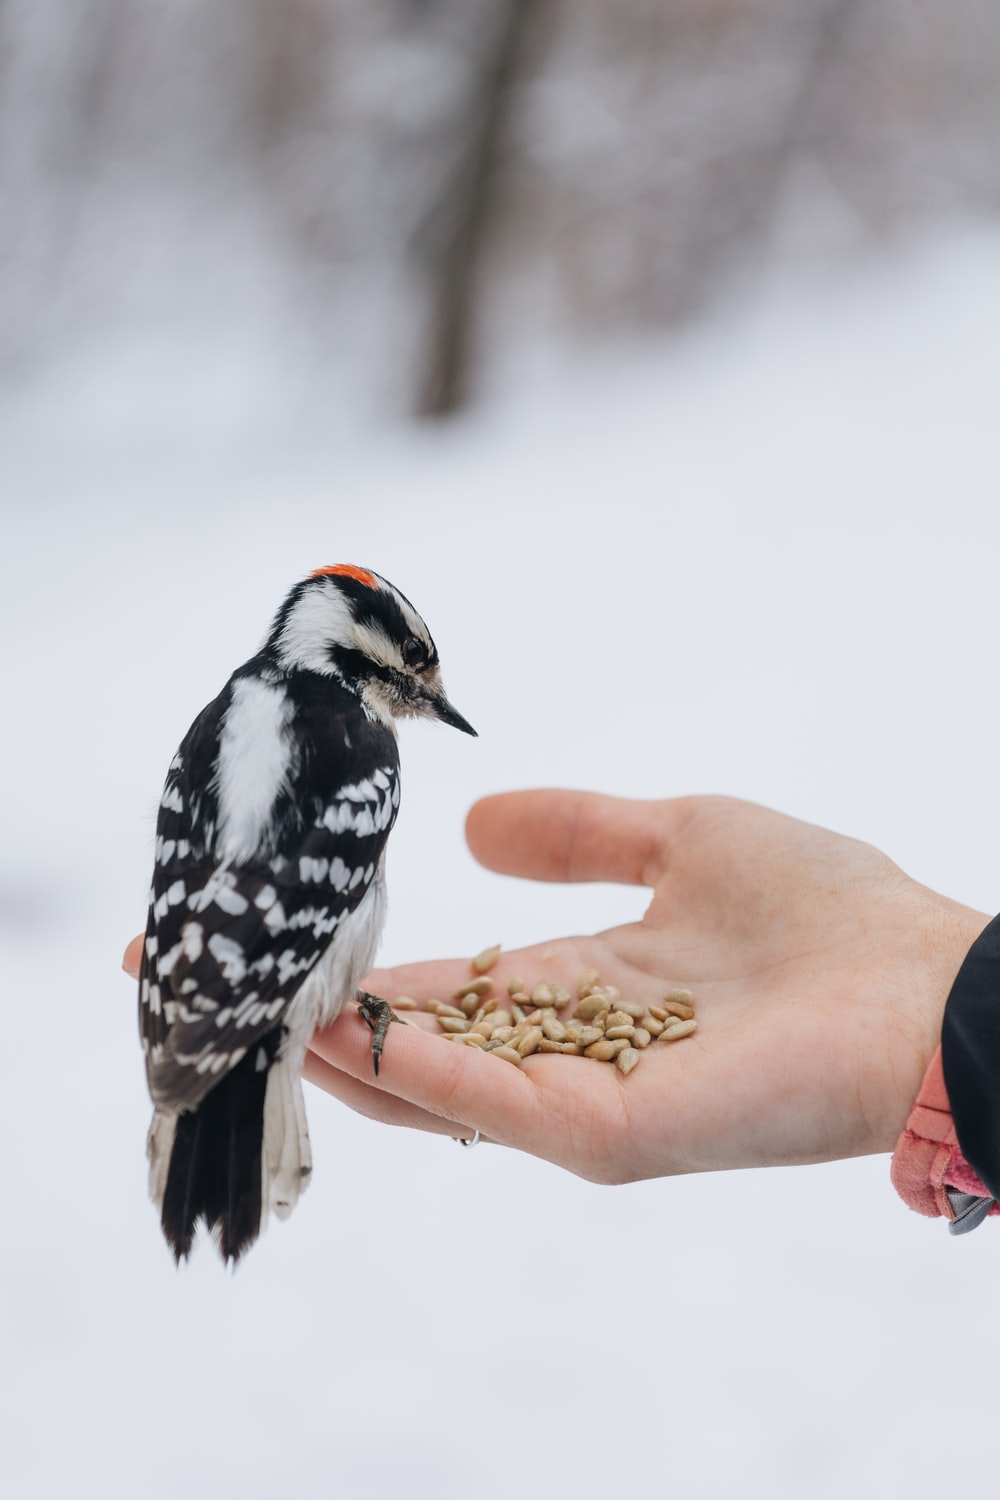 Hairy woodpecker on person's hand